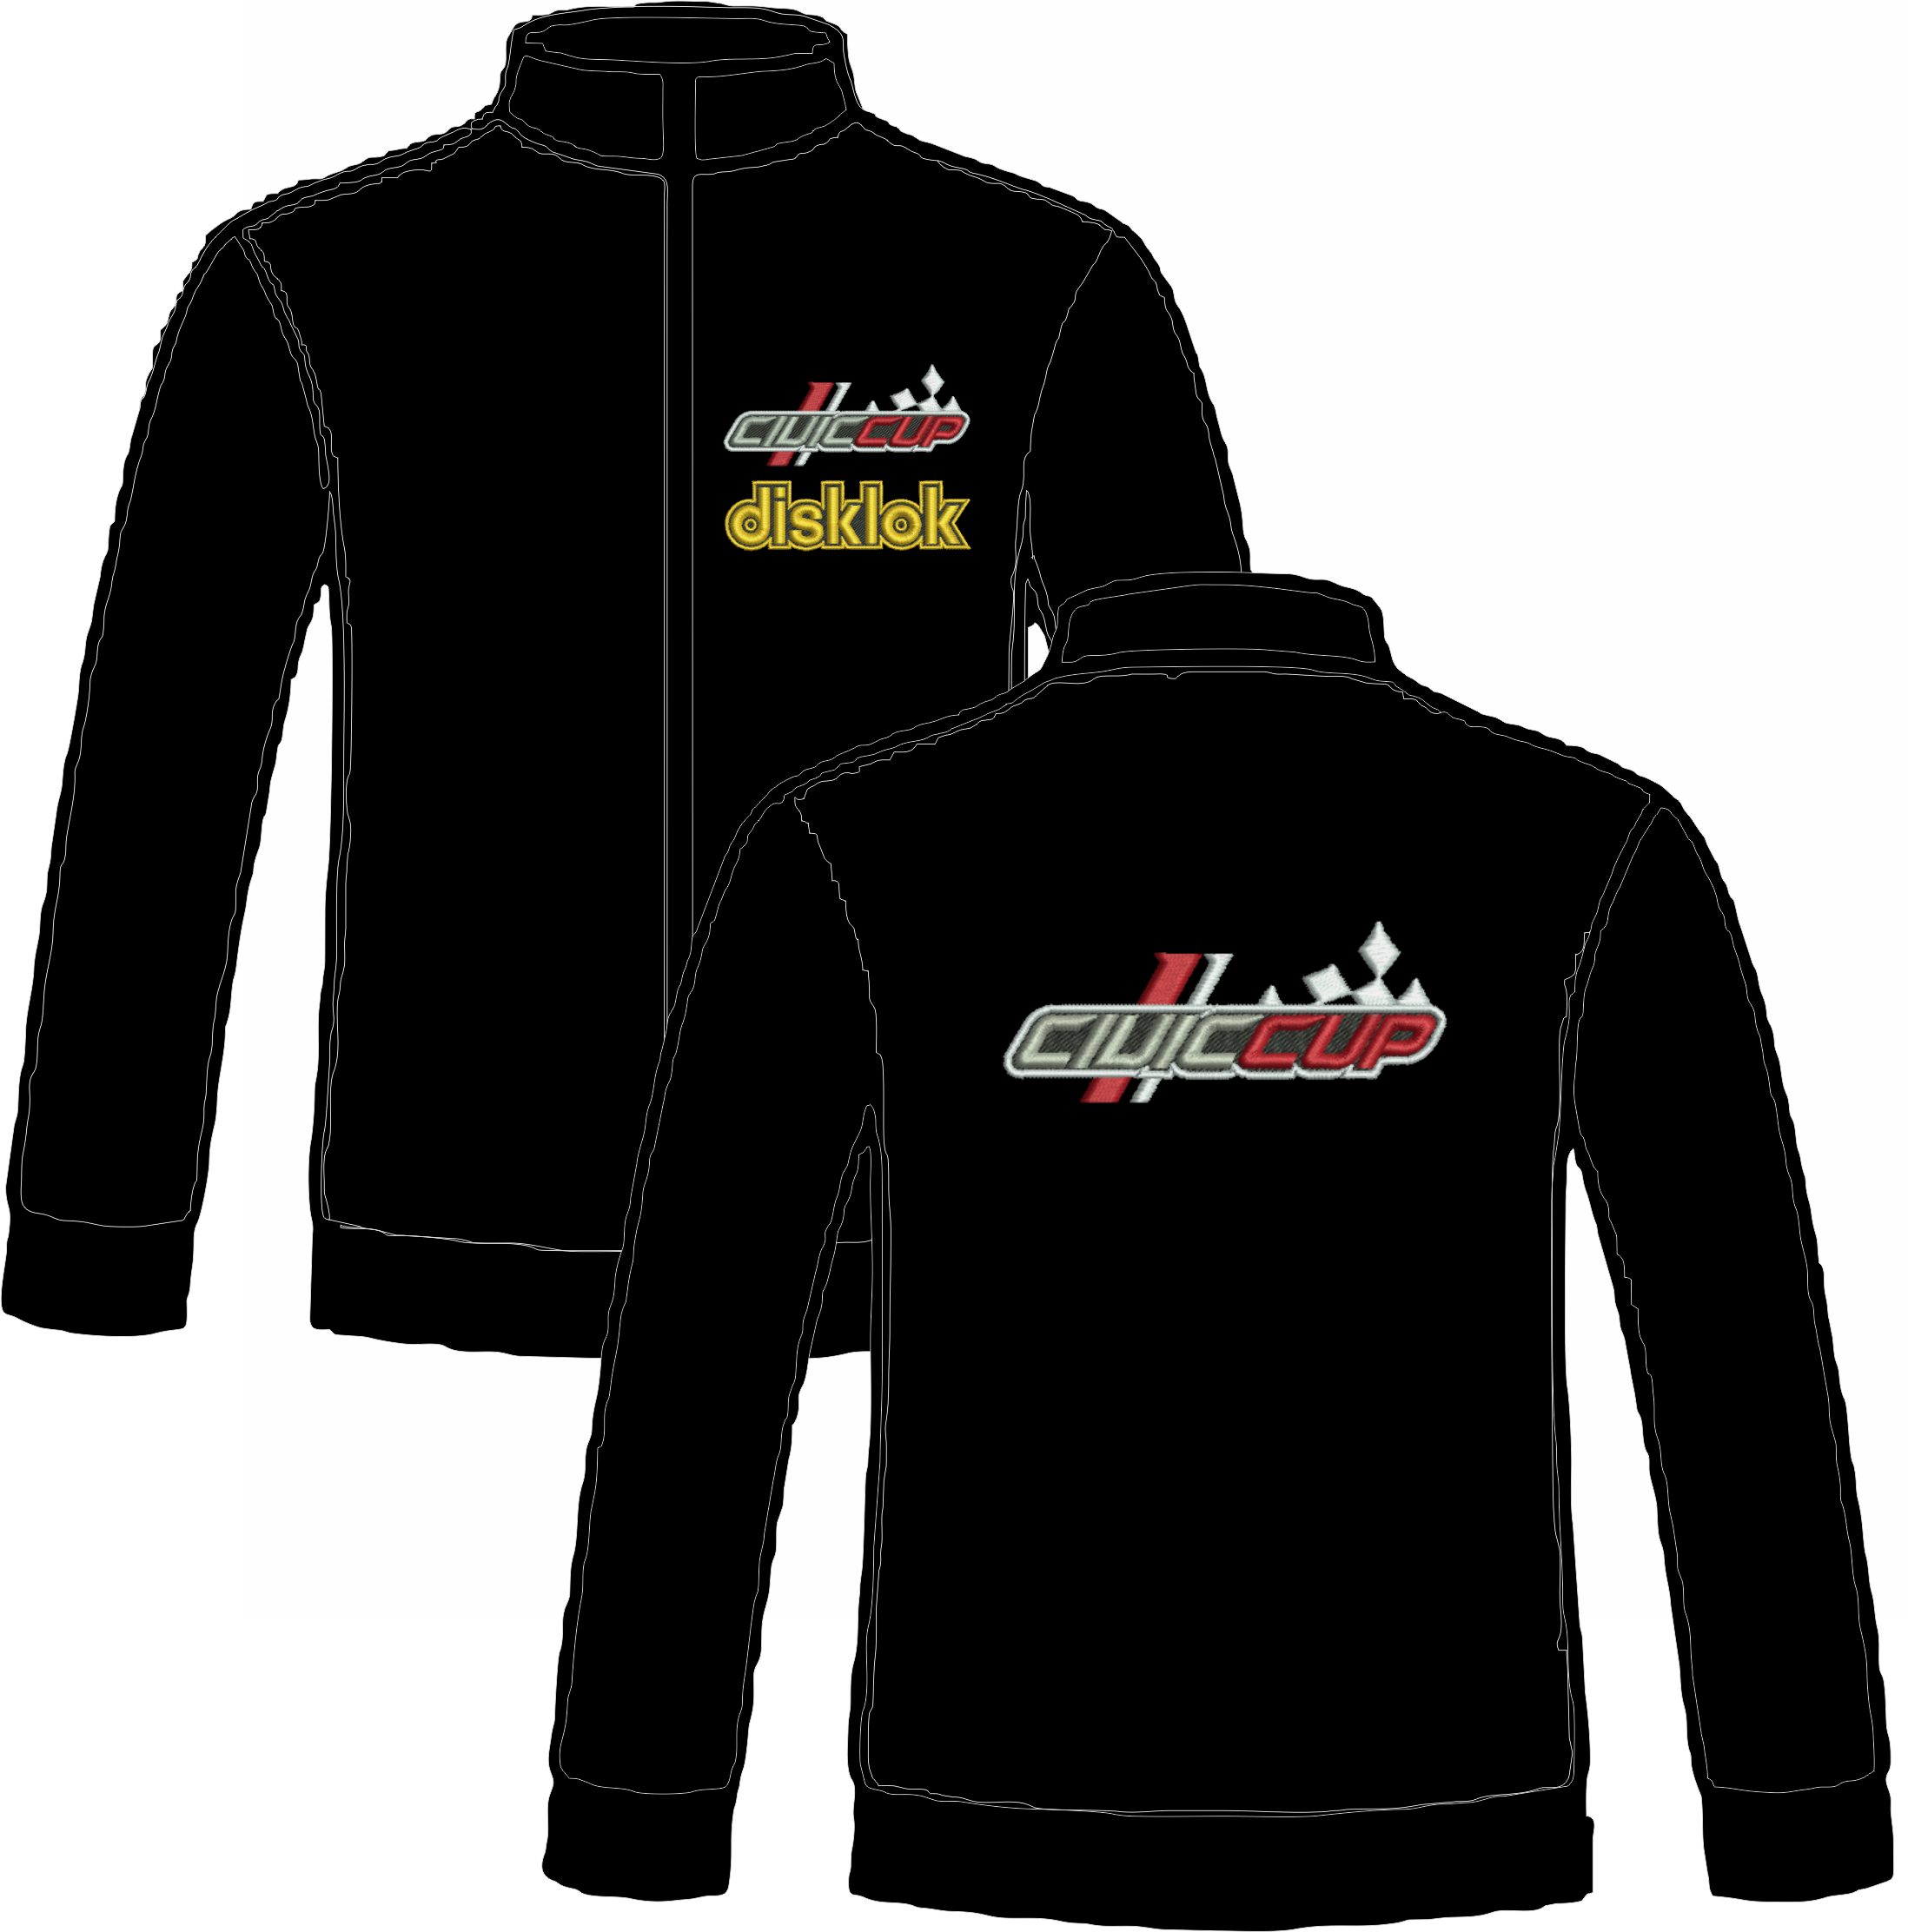 Civic Cup Softshell